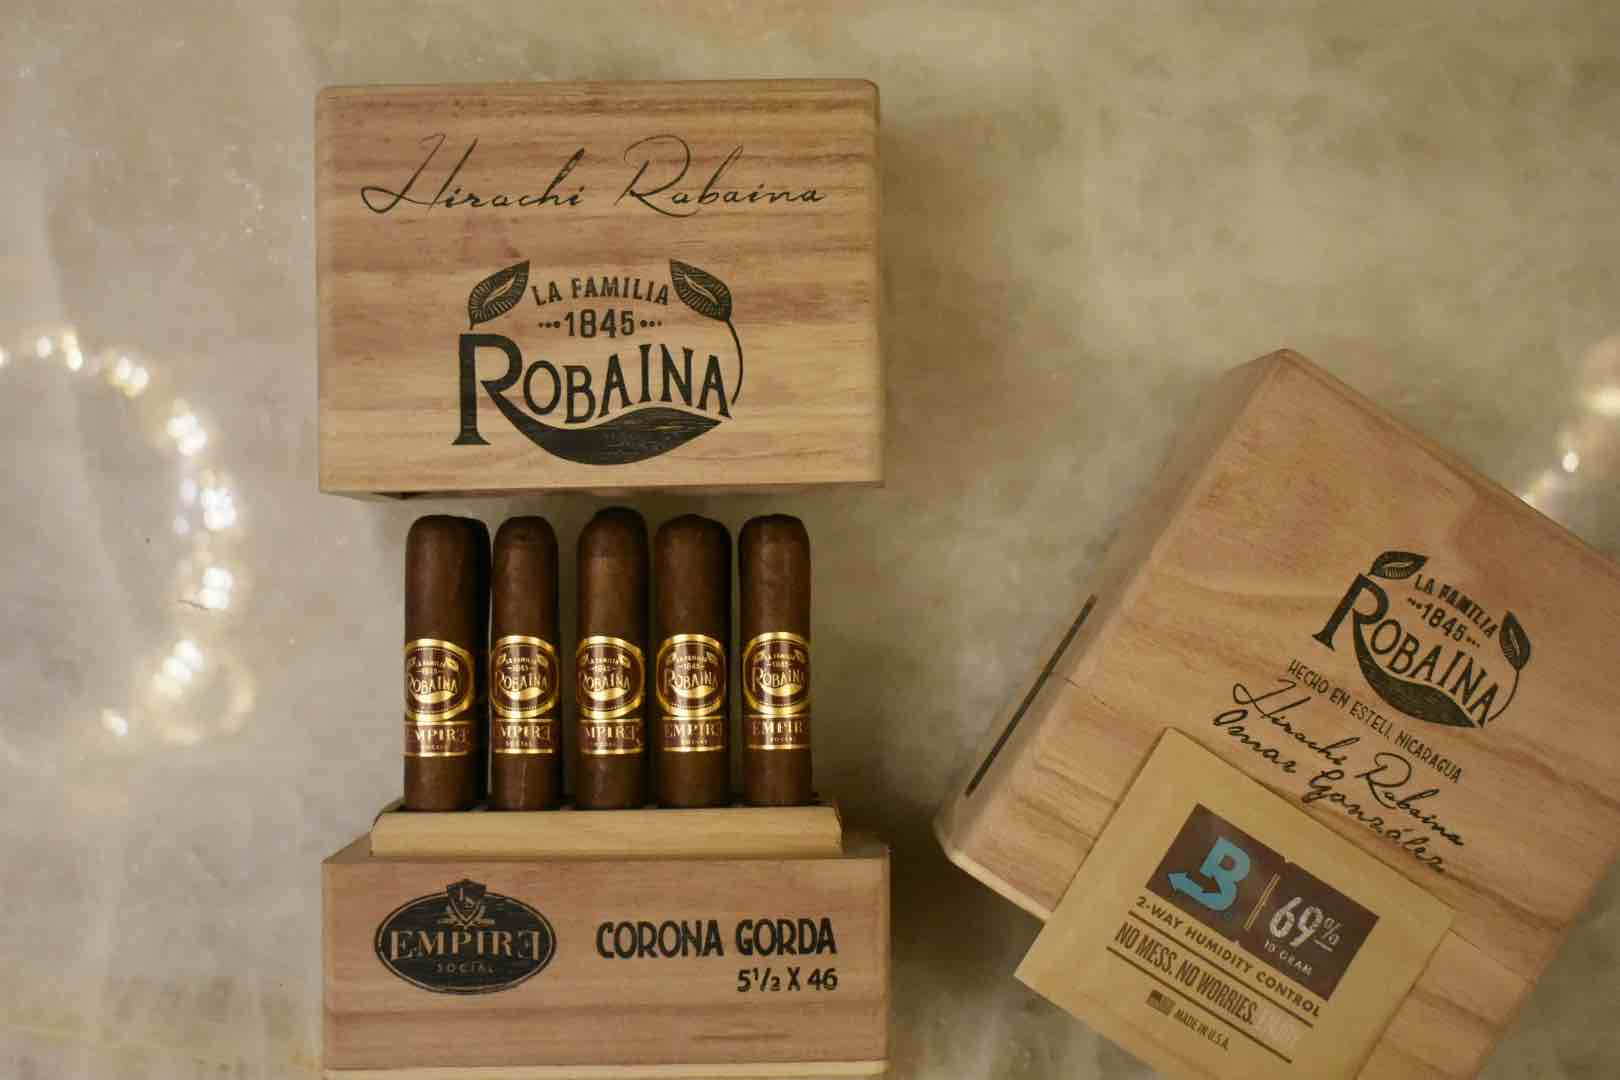 Cigar News: La Familia Robaina Releases Exclusive H.R. Signature Corona Gorda Offering